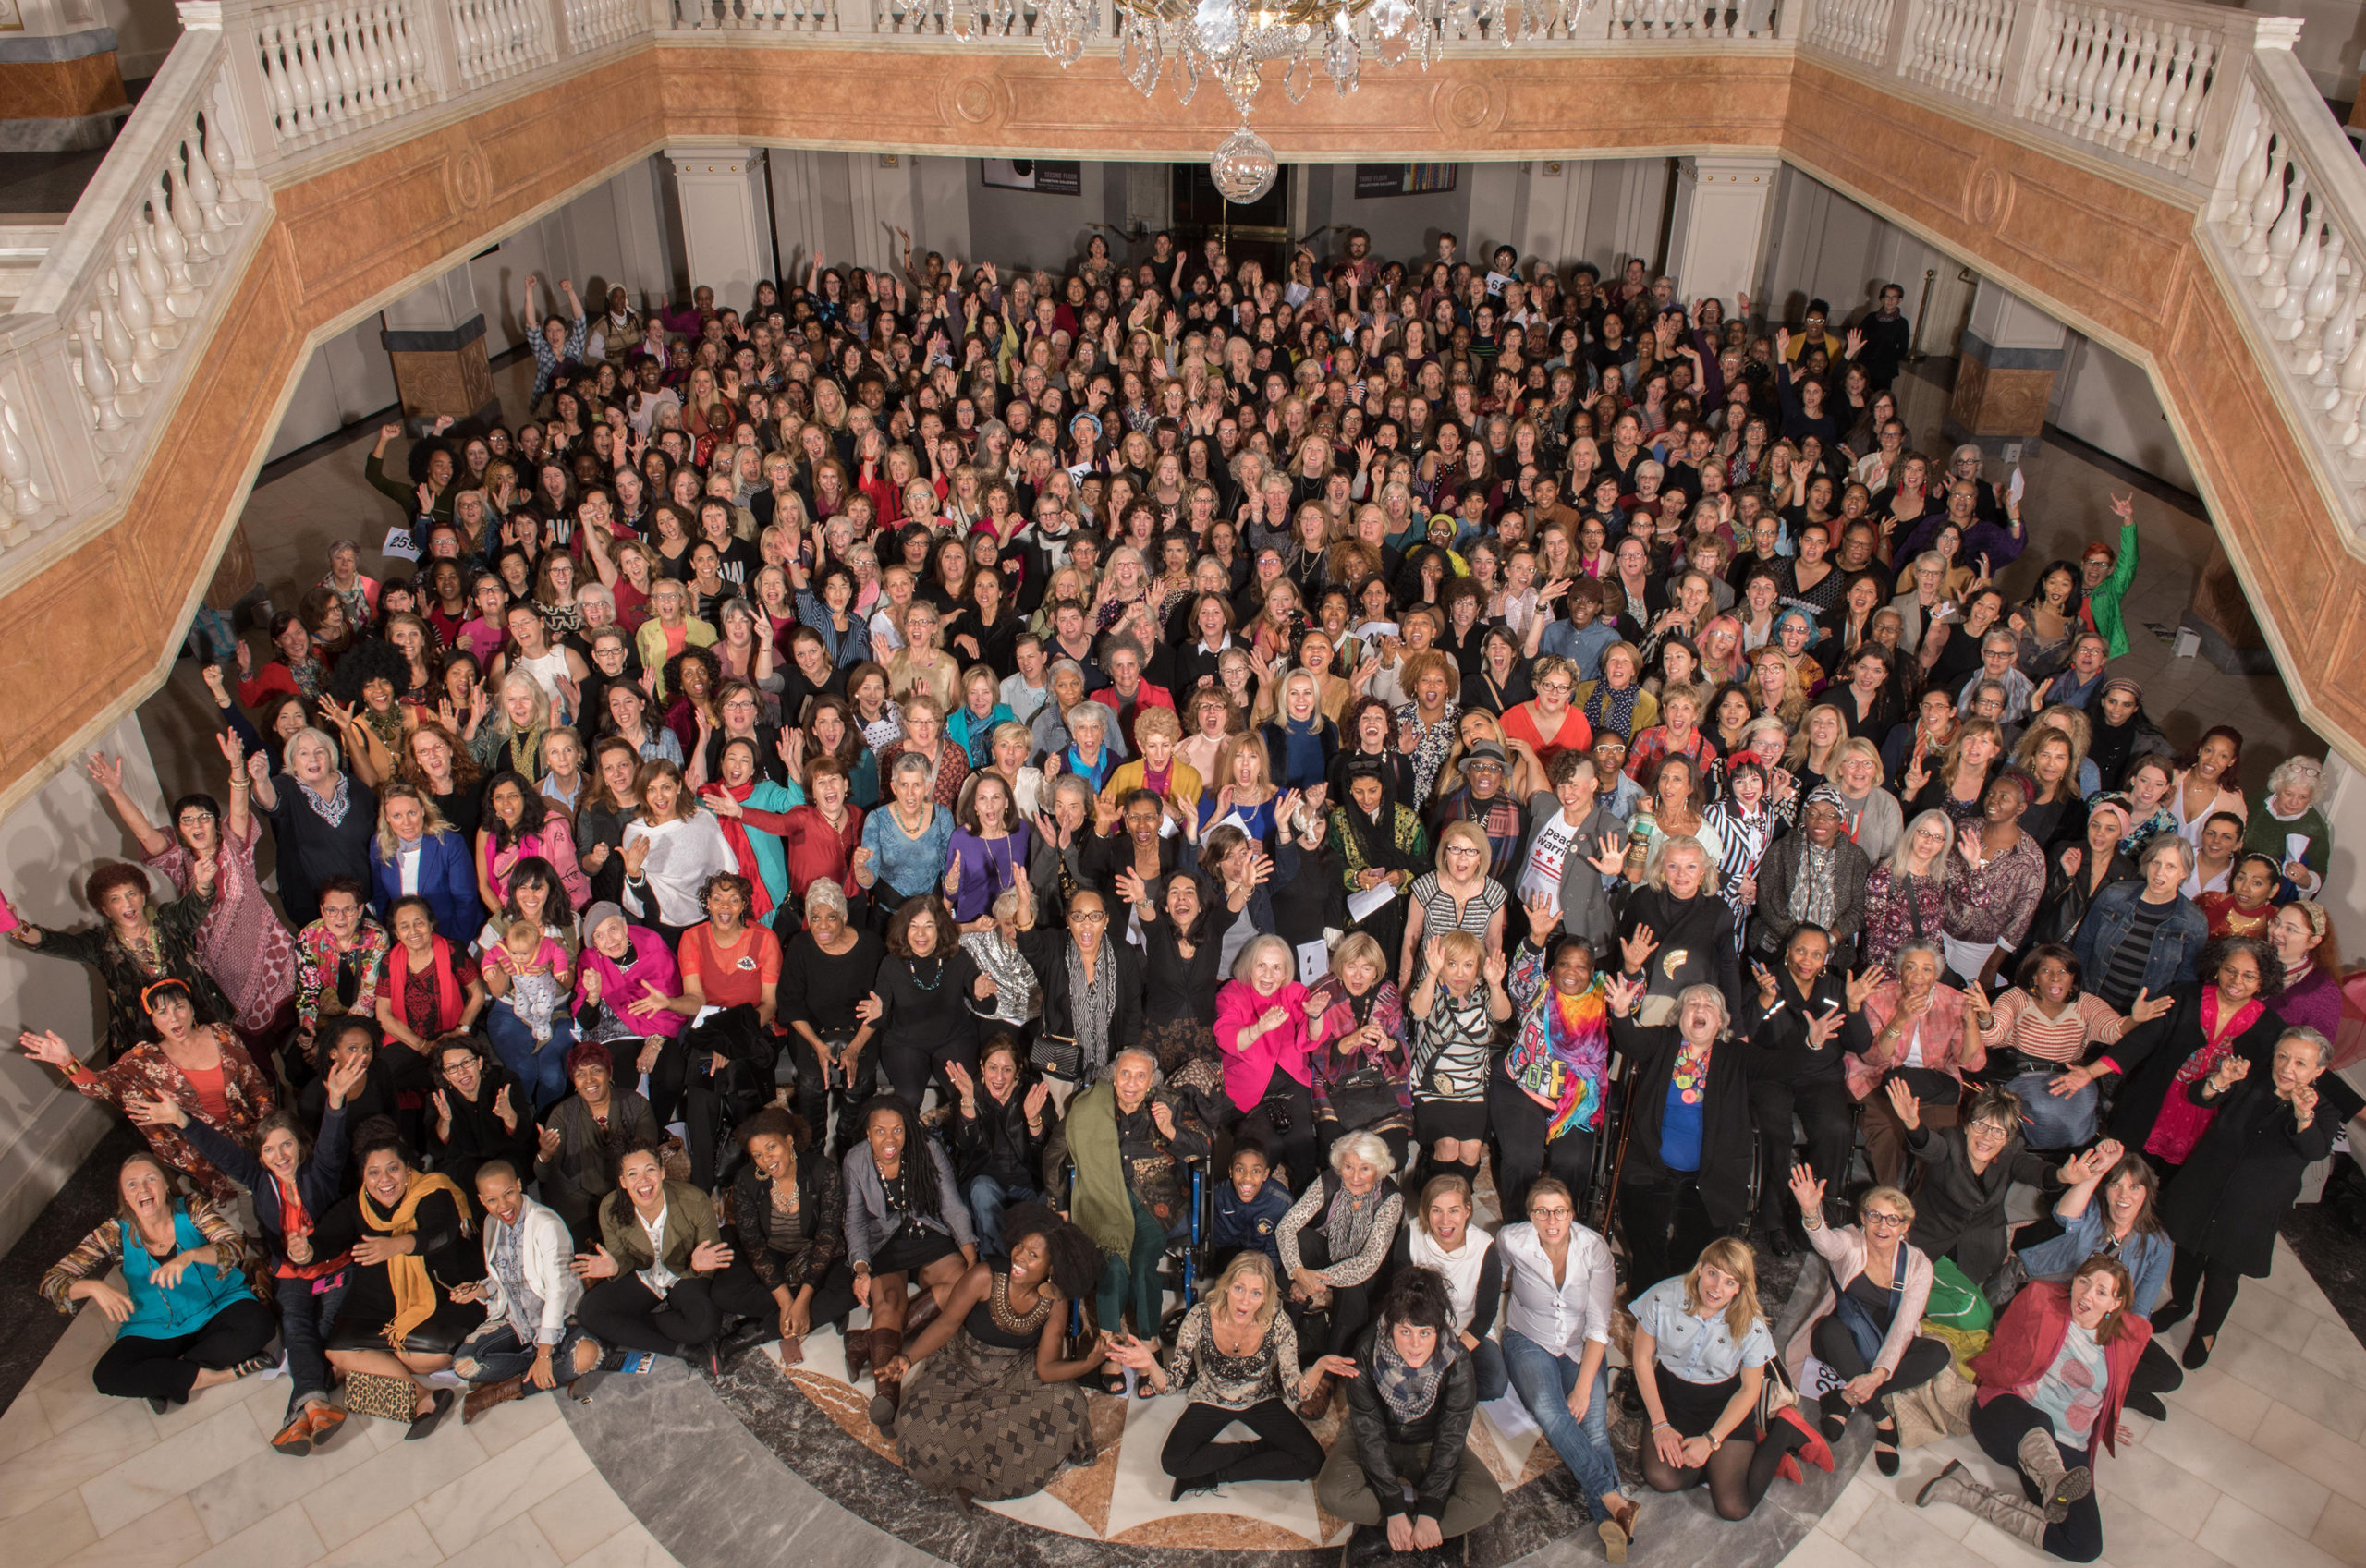 Now Be Here #4, DC/MD/VA, (2017) Photo by Kim Johnson; Courtesy of Kim Schoenstadt, linn meyers and the National Museum of Women in the Arts, Washington, D.C.